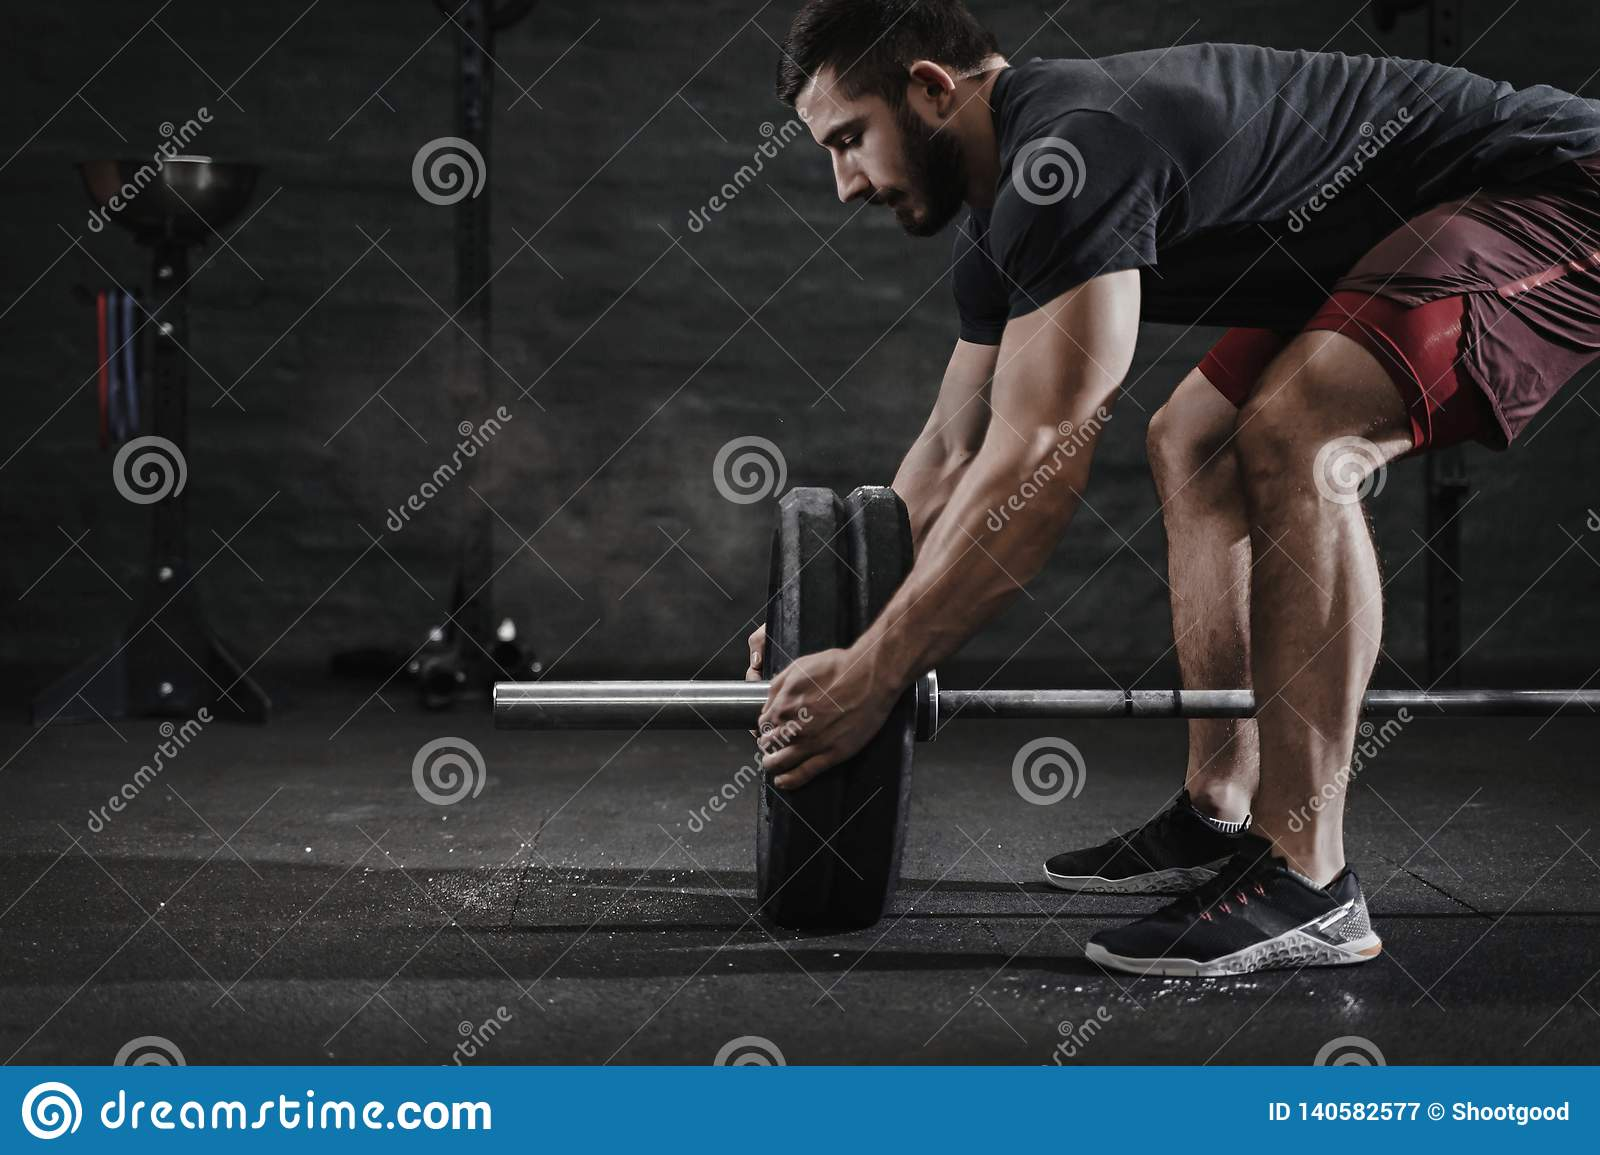 Young crossfit athlete preparing barbell lifting weight at the gym. Magnesia protection dust cloud. Handsome man doing functio